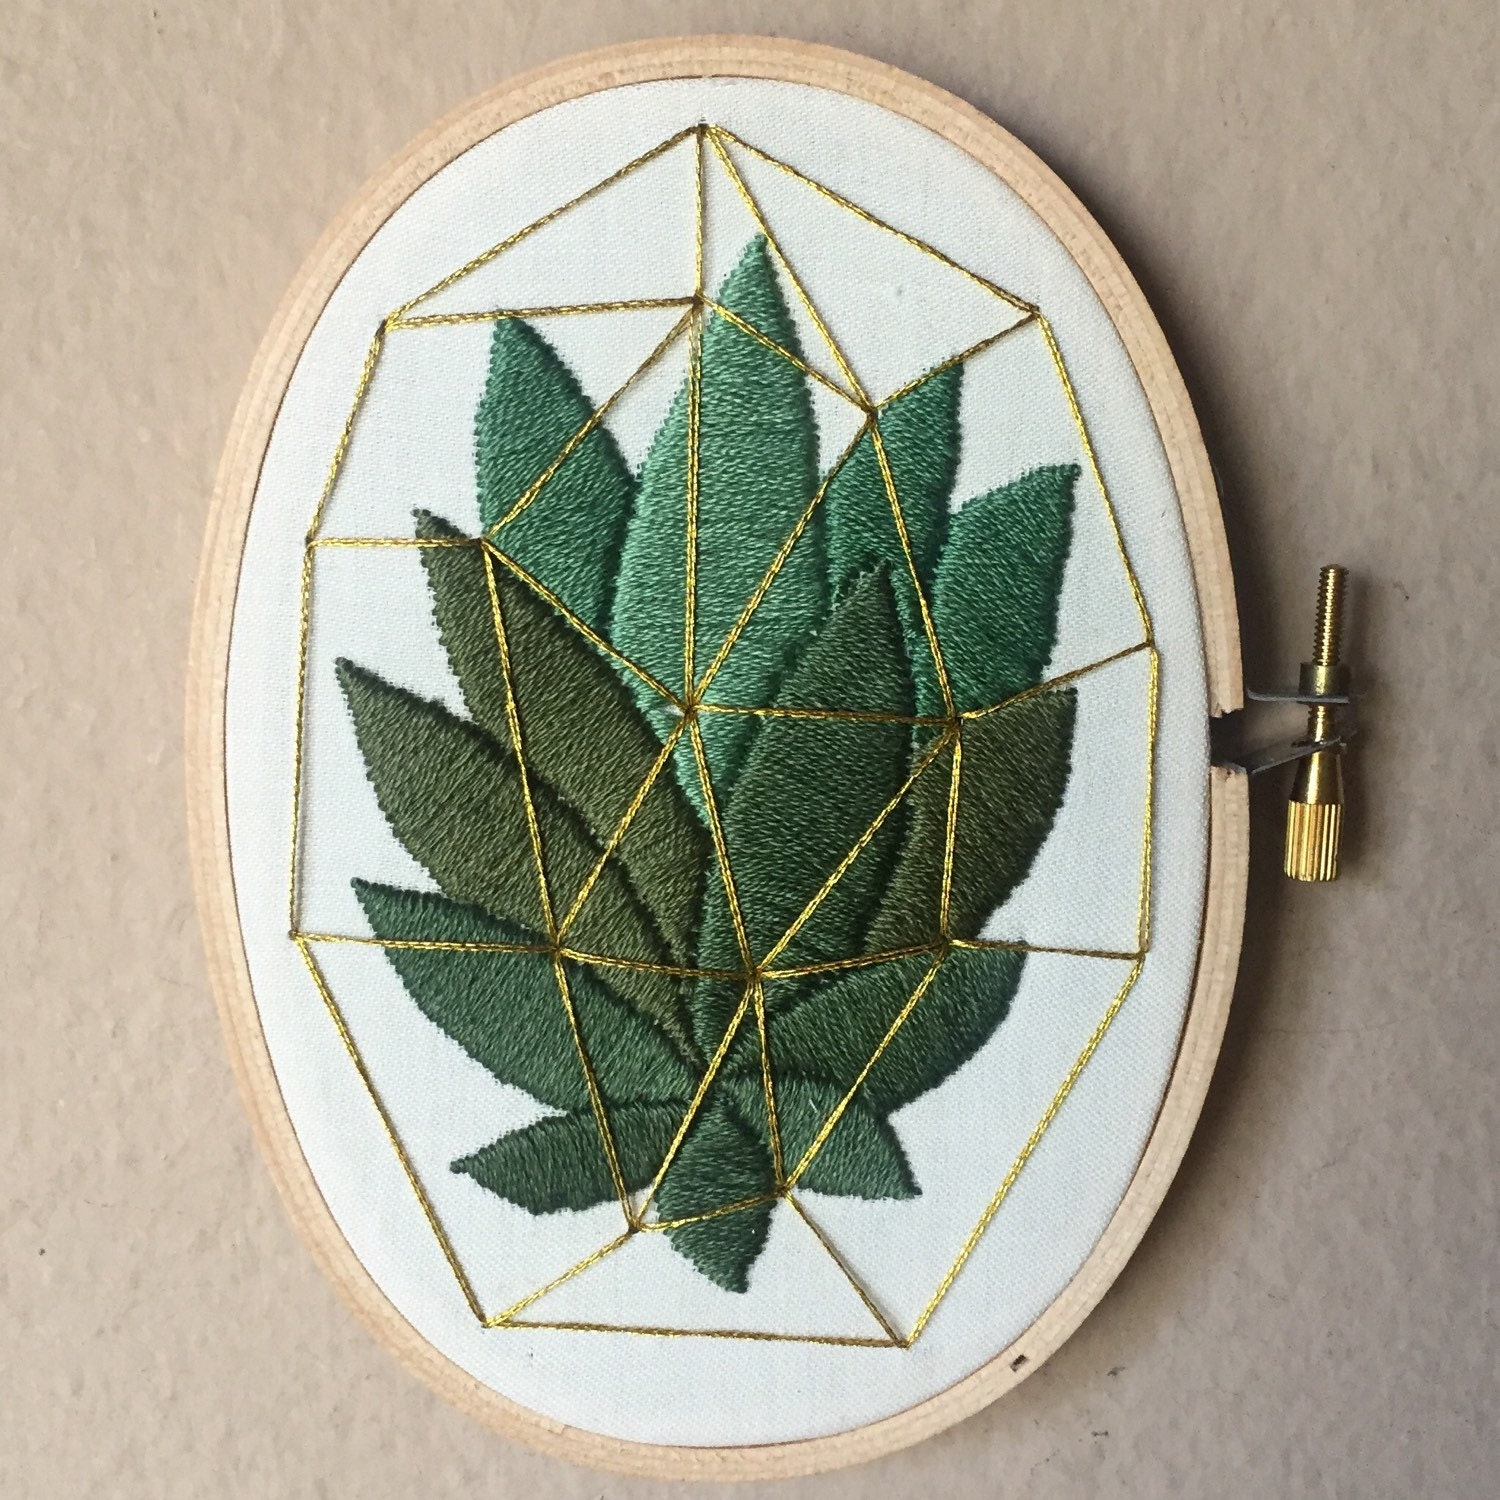 Succulent cactus hand embroidered in gold by moonrisewhims